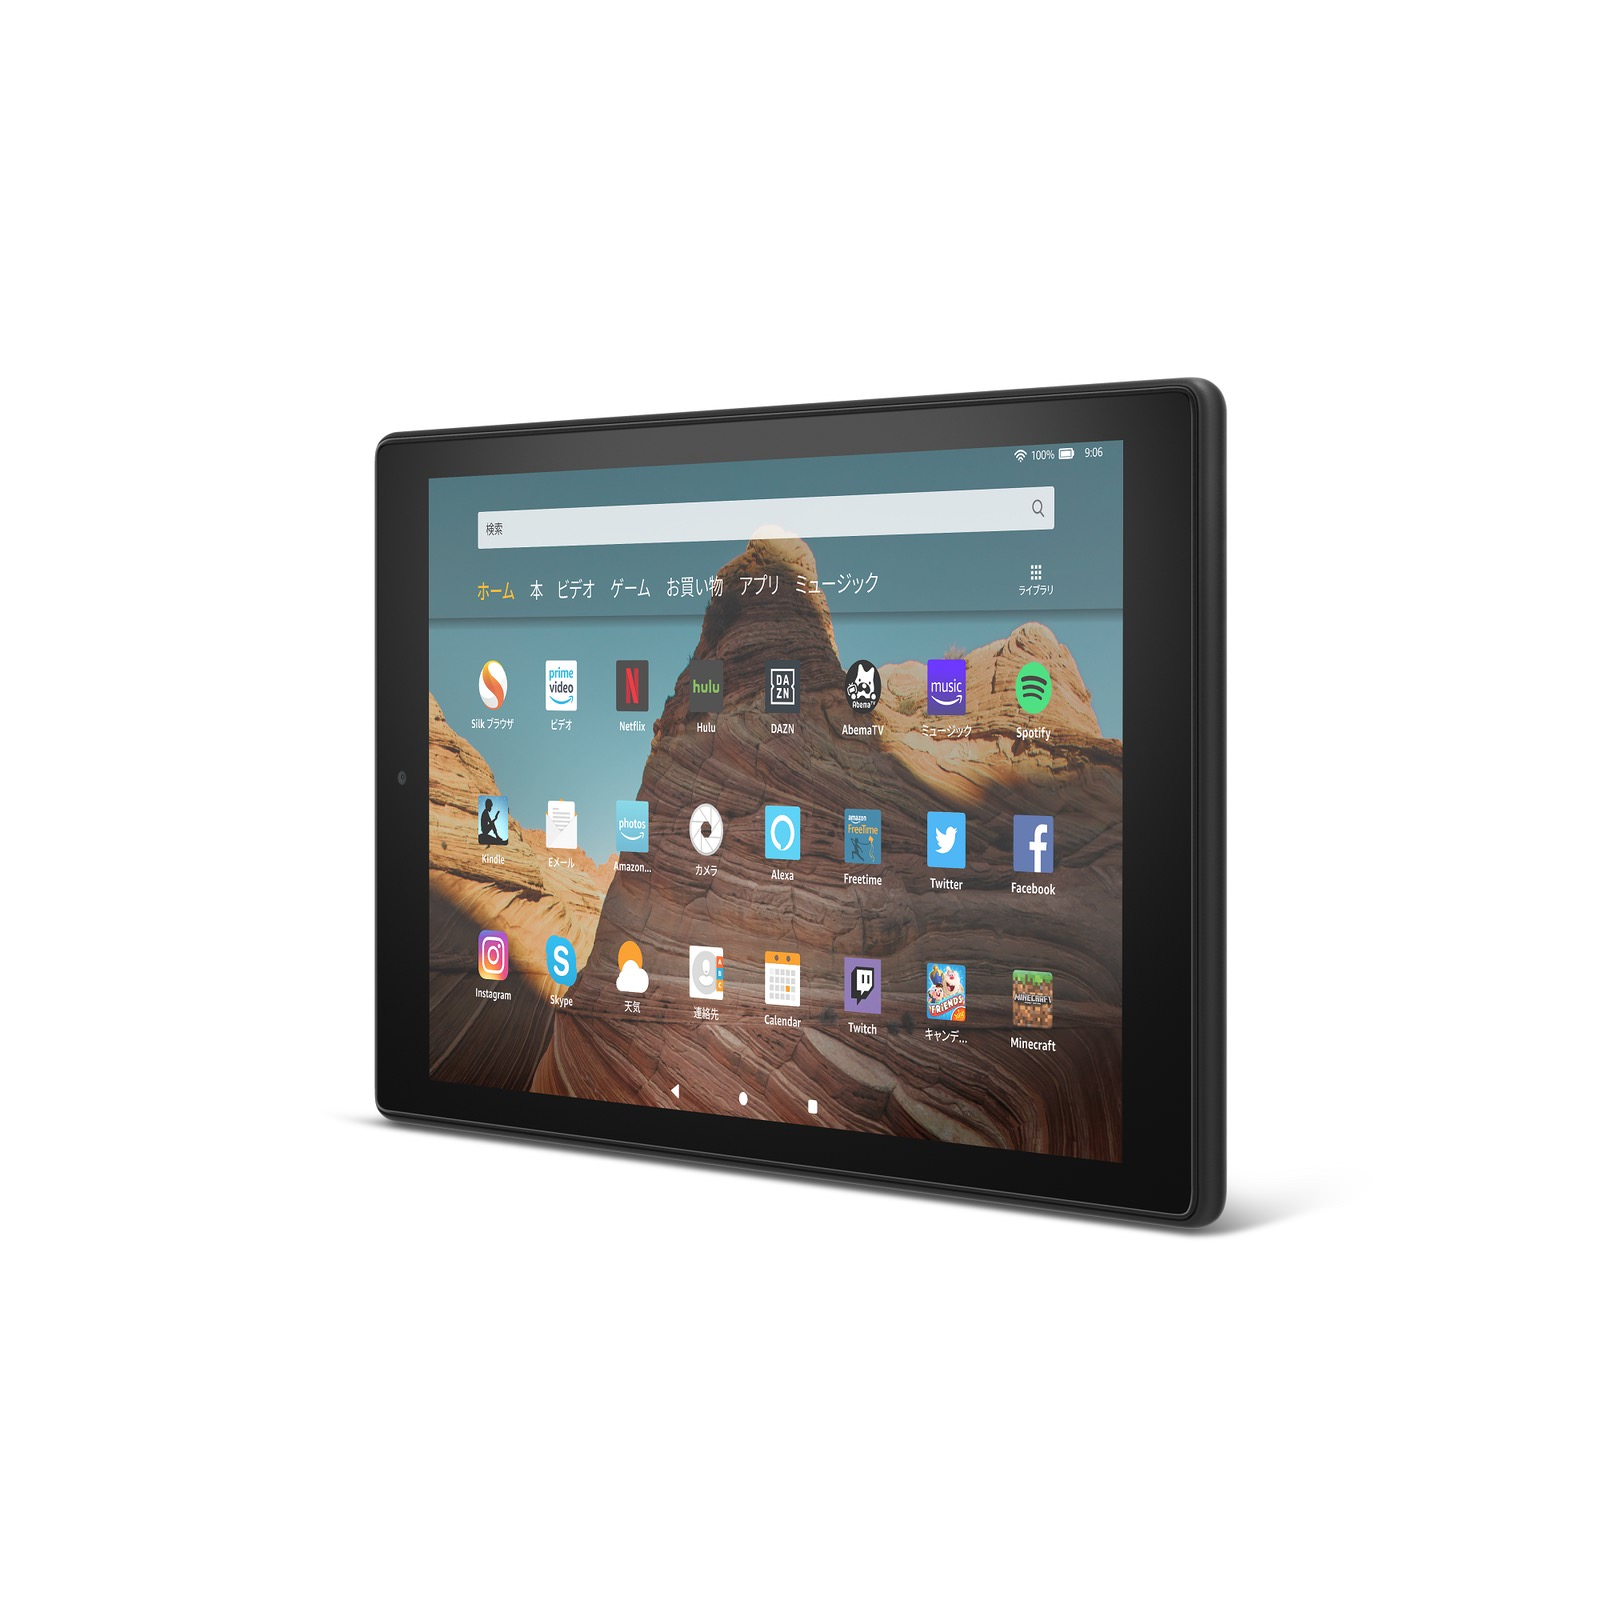 Fire-HD-10-Tablet-New-Model-05.jpg